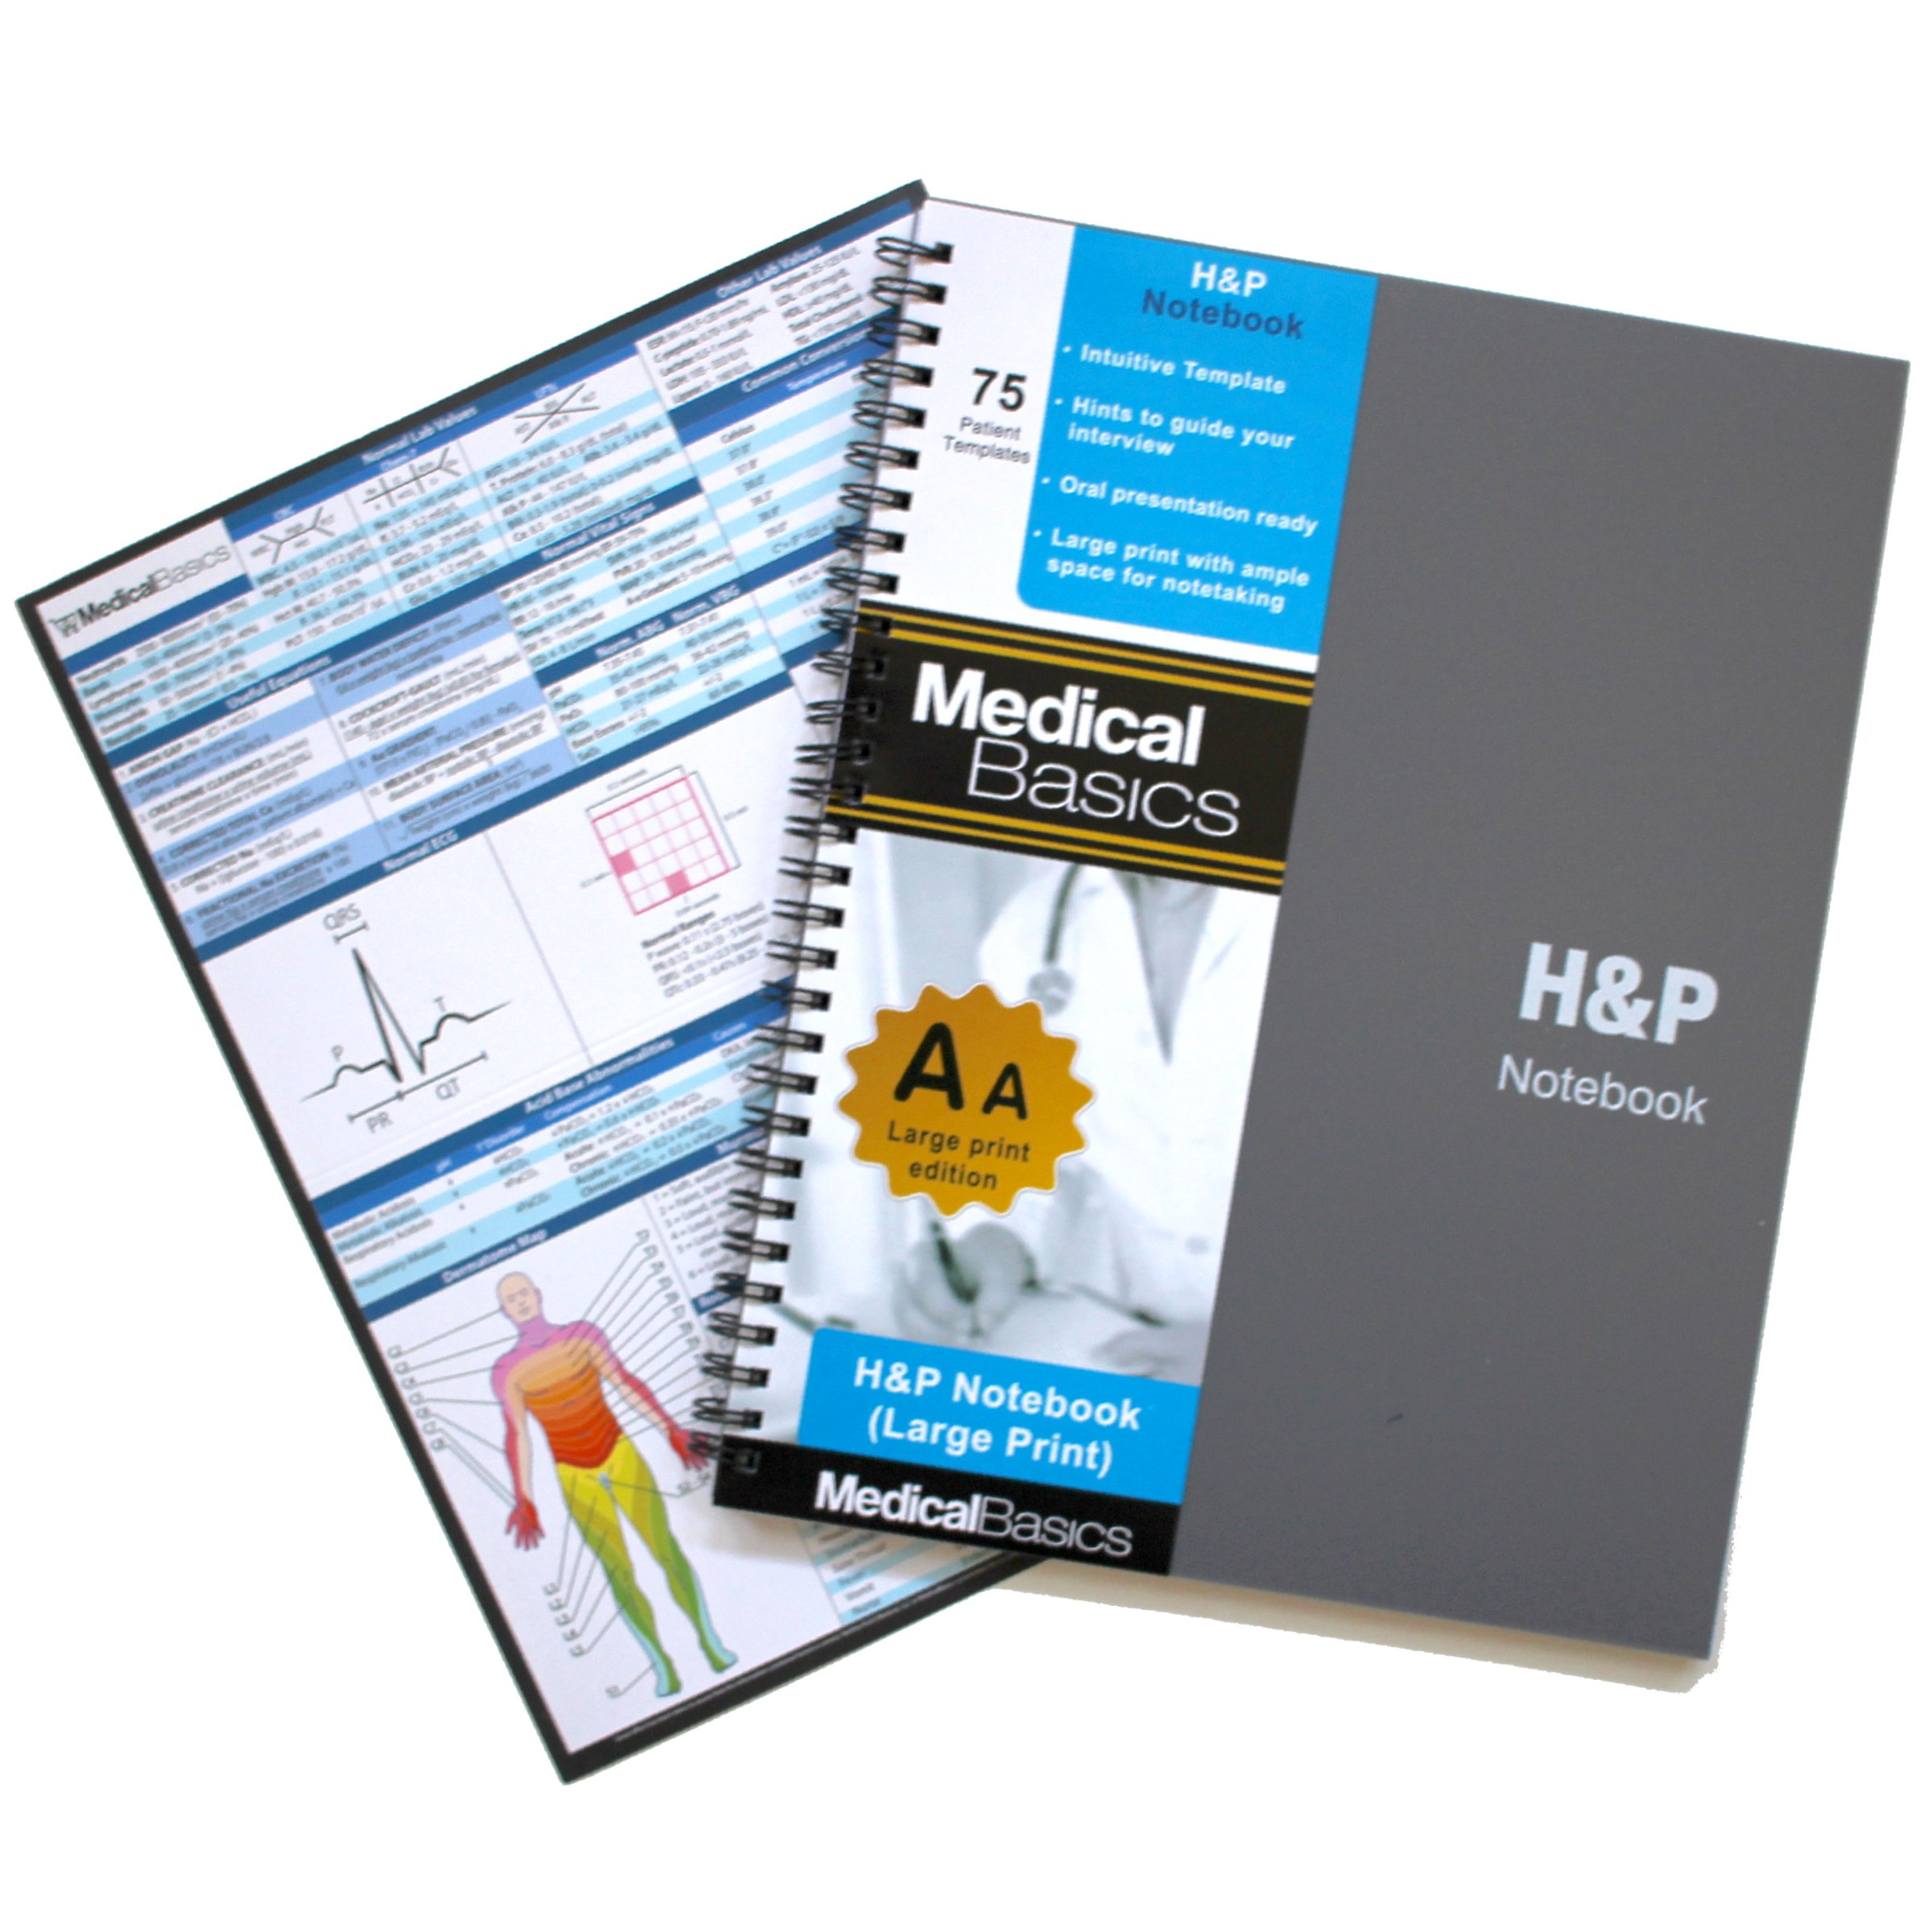 H&P Notebook Plus 8.5''x10'' (Large Print) - Medical History and Physical Notebook, 70 Medical Templates with Perforations